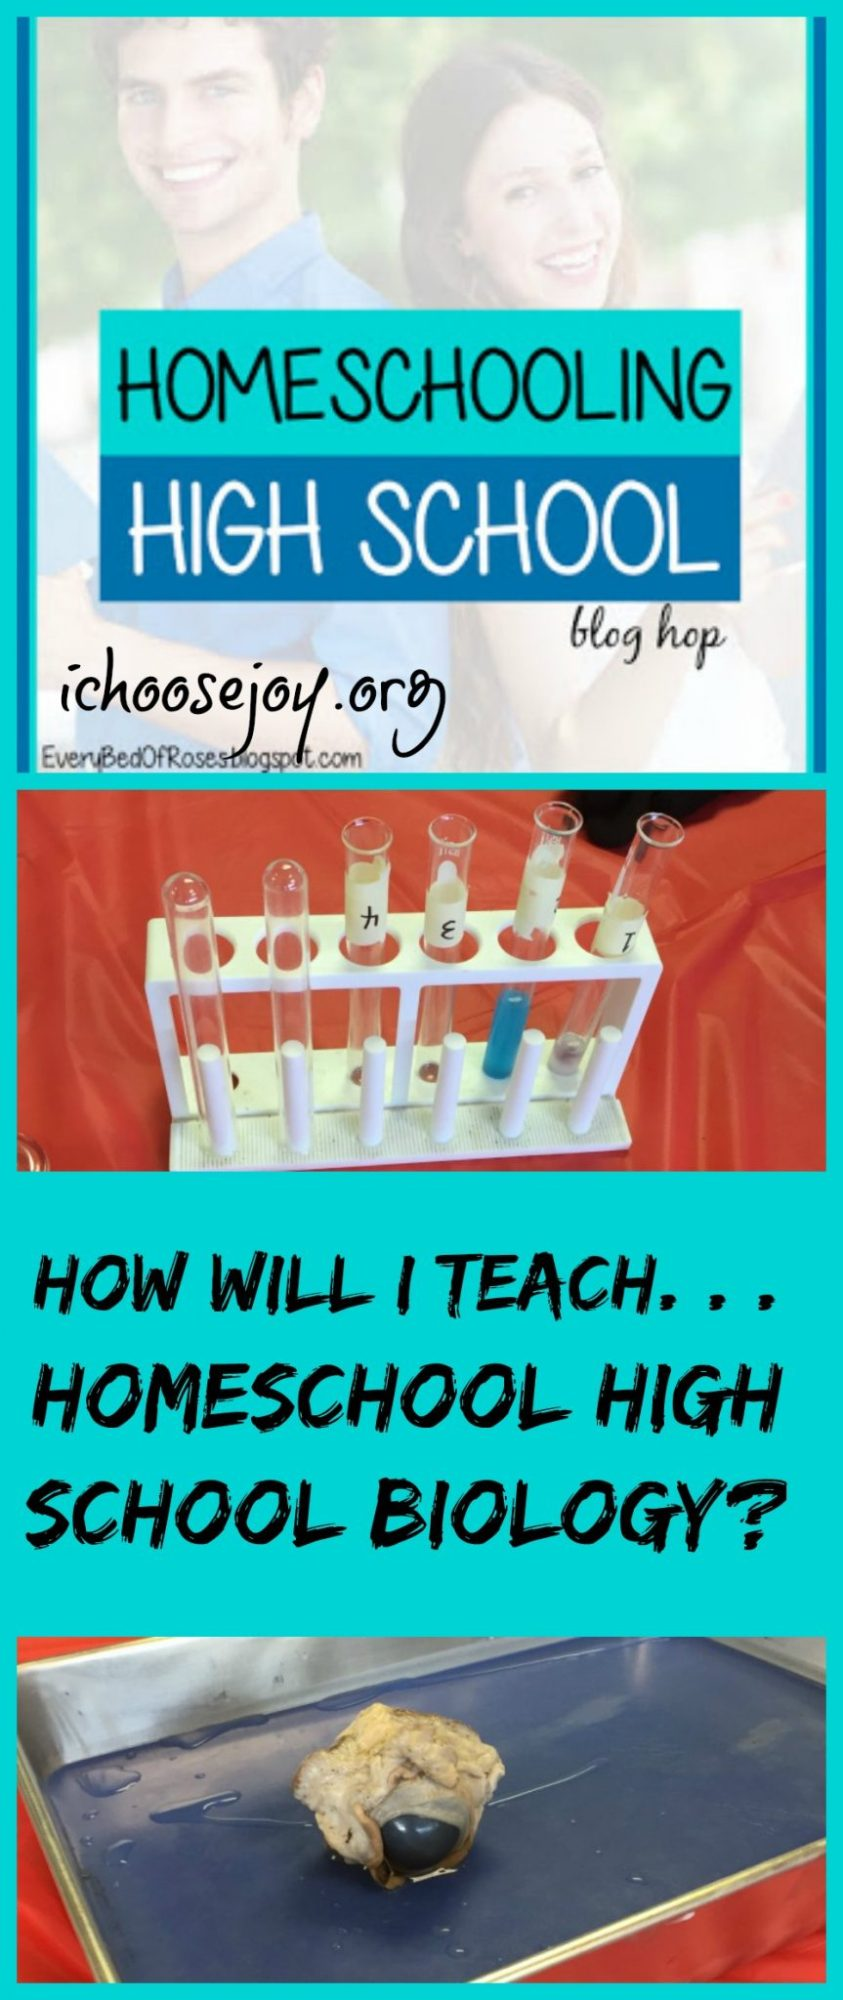 How Will I Teach. . . Homeschool High School Biology?